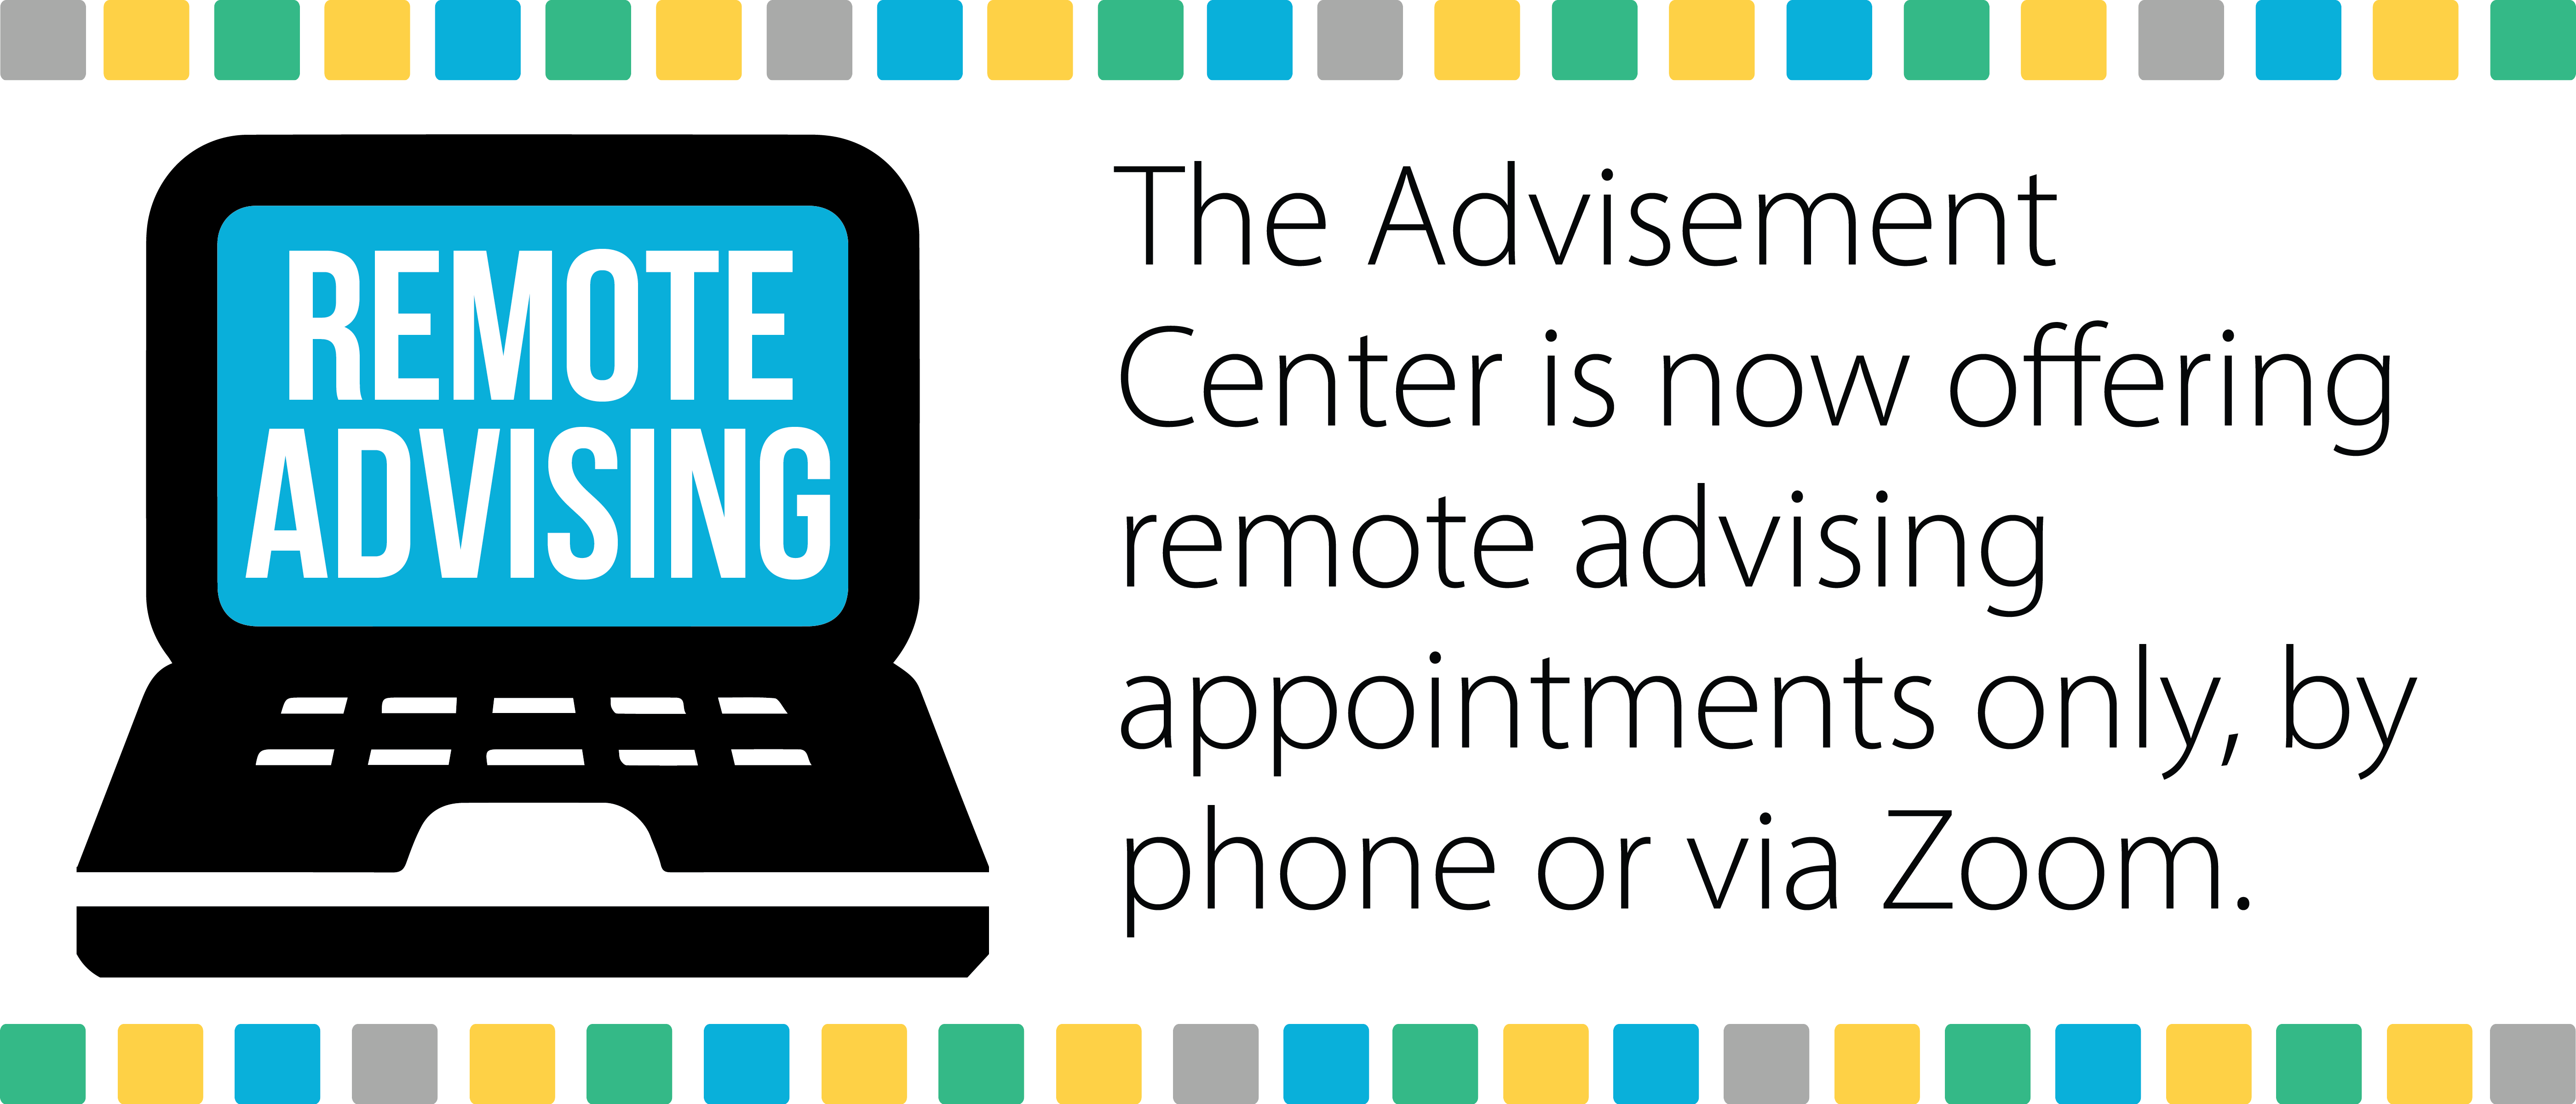 Advisement Center offering remote advising appointments only